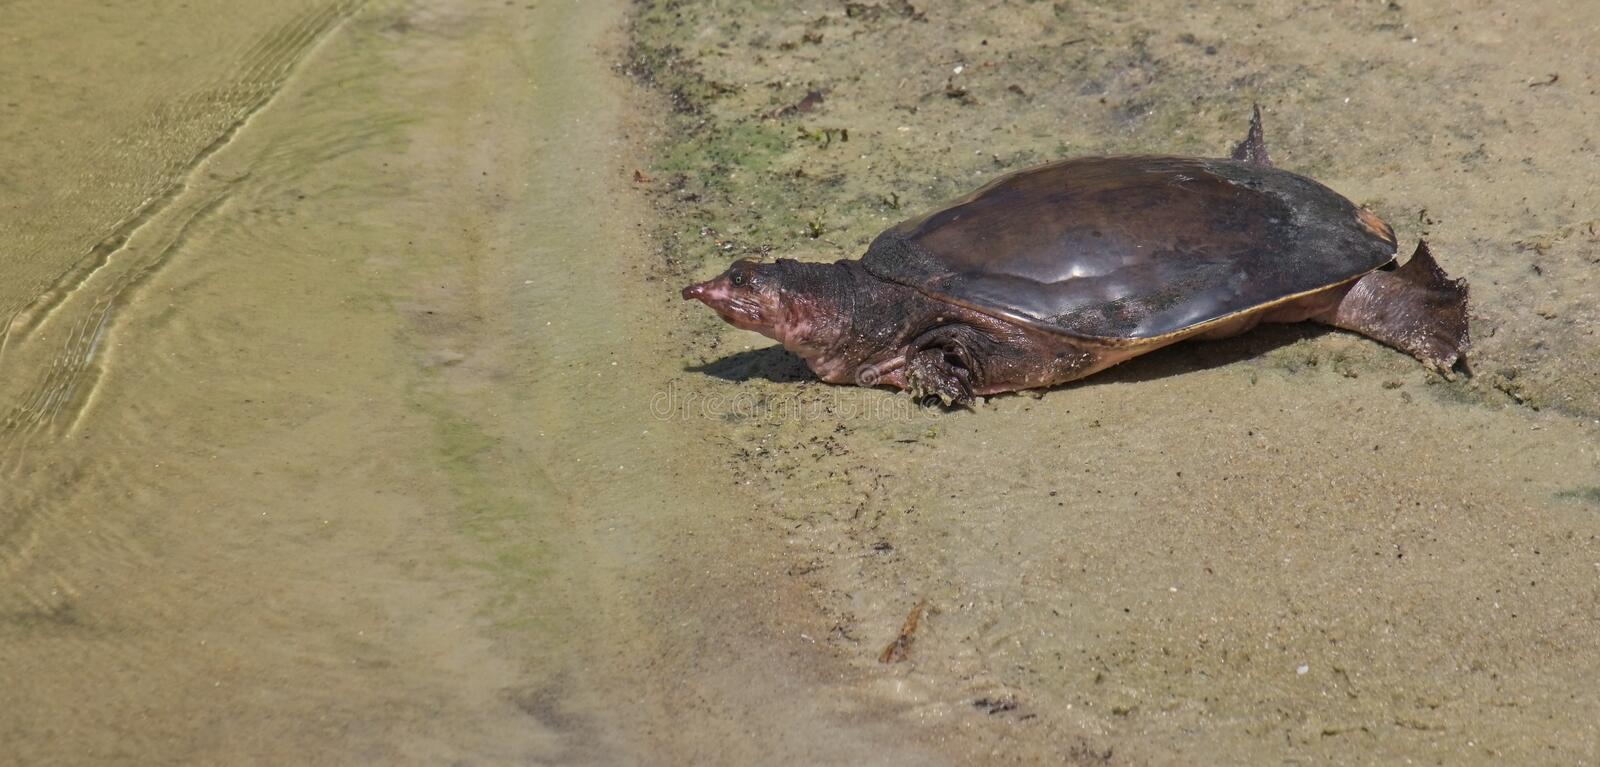 Florida softshell turtle, apalone ferox. Florida softshell turtle,apalone ferox, at the sandy shore of a lake in sunny florida with head out of shell and eyes royalty free stock photos